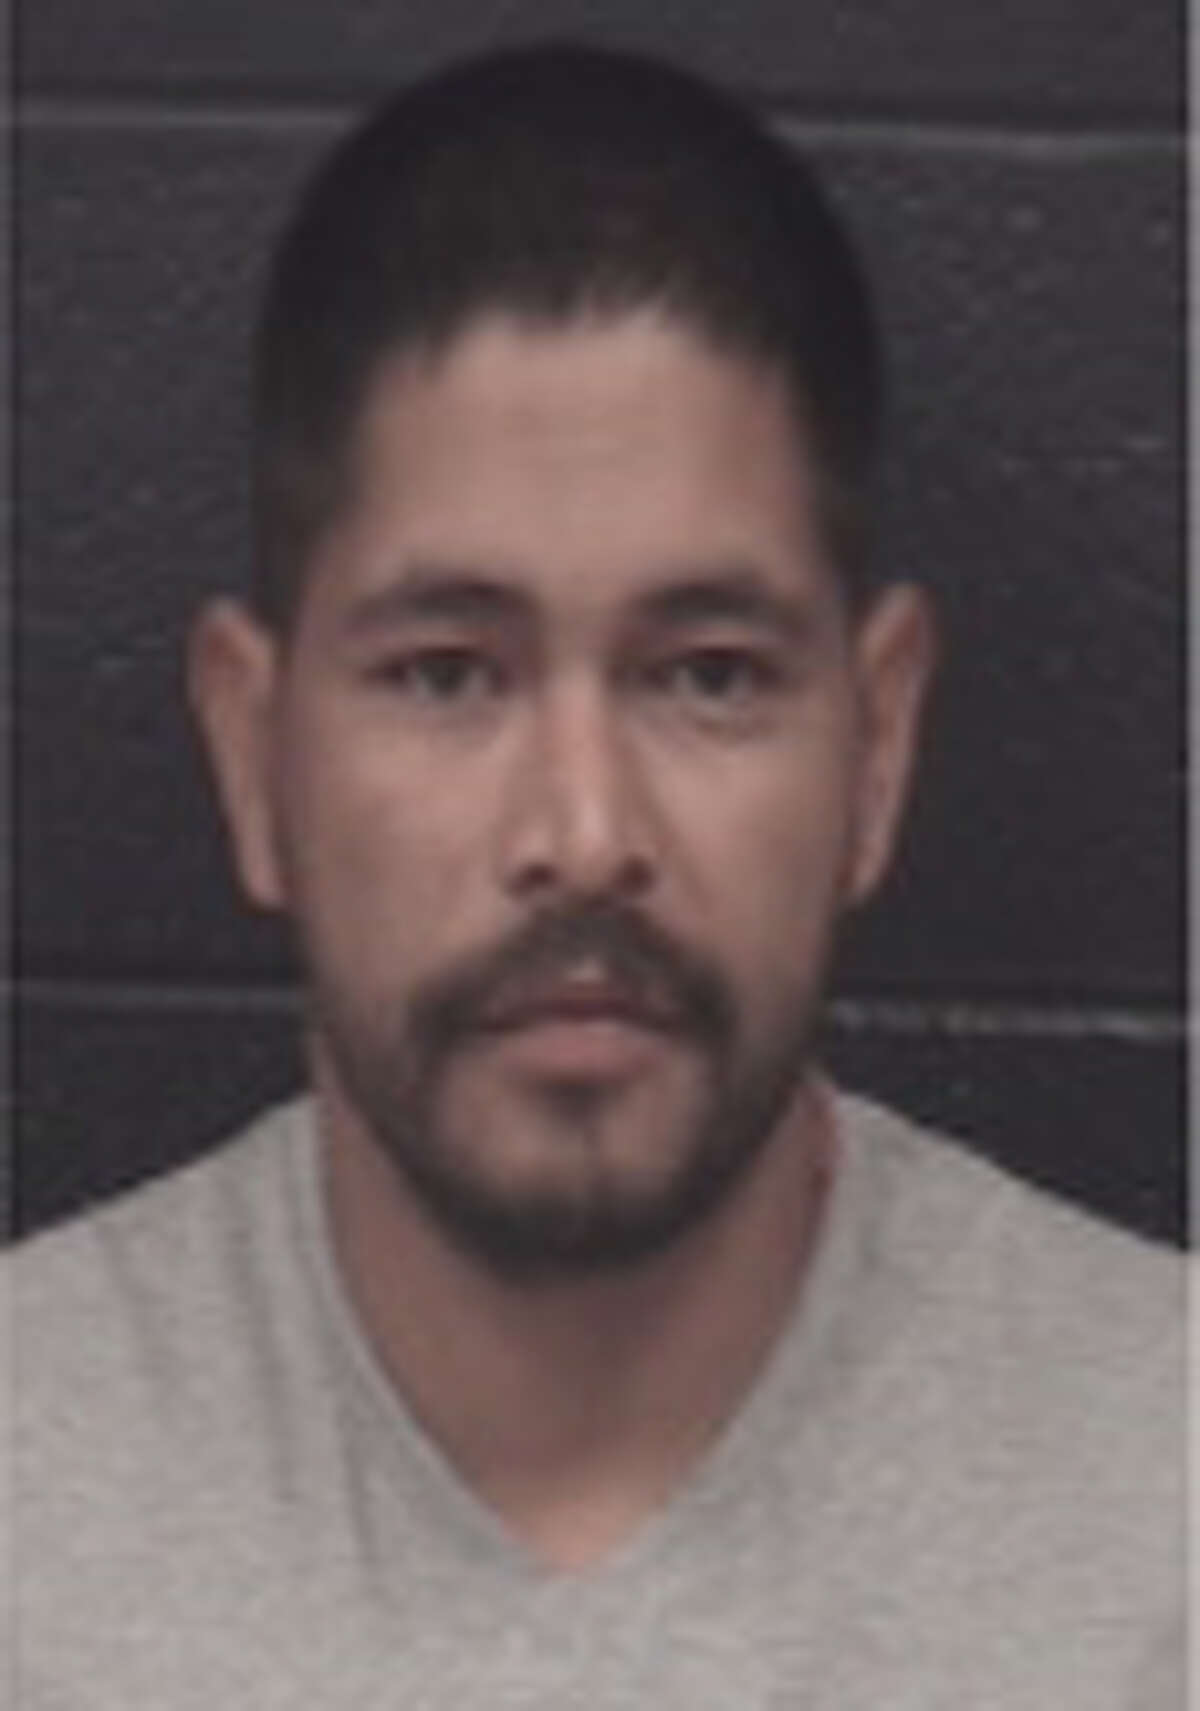 L. Hernandez Almanza was charged with driving while intoxicated.